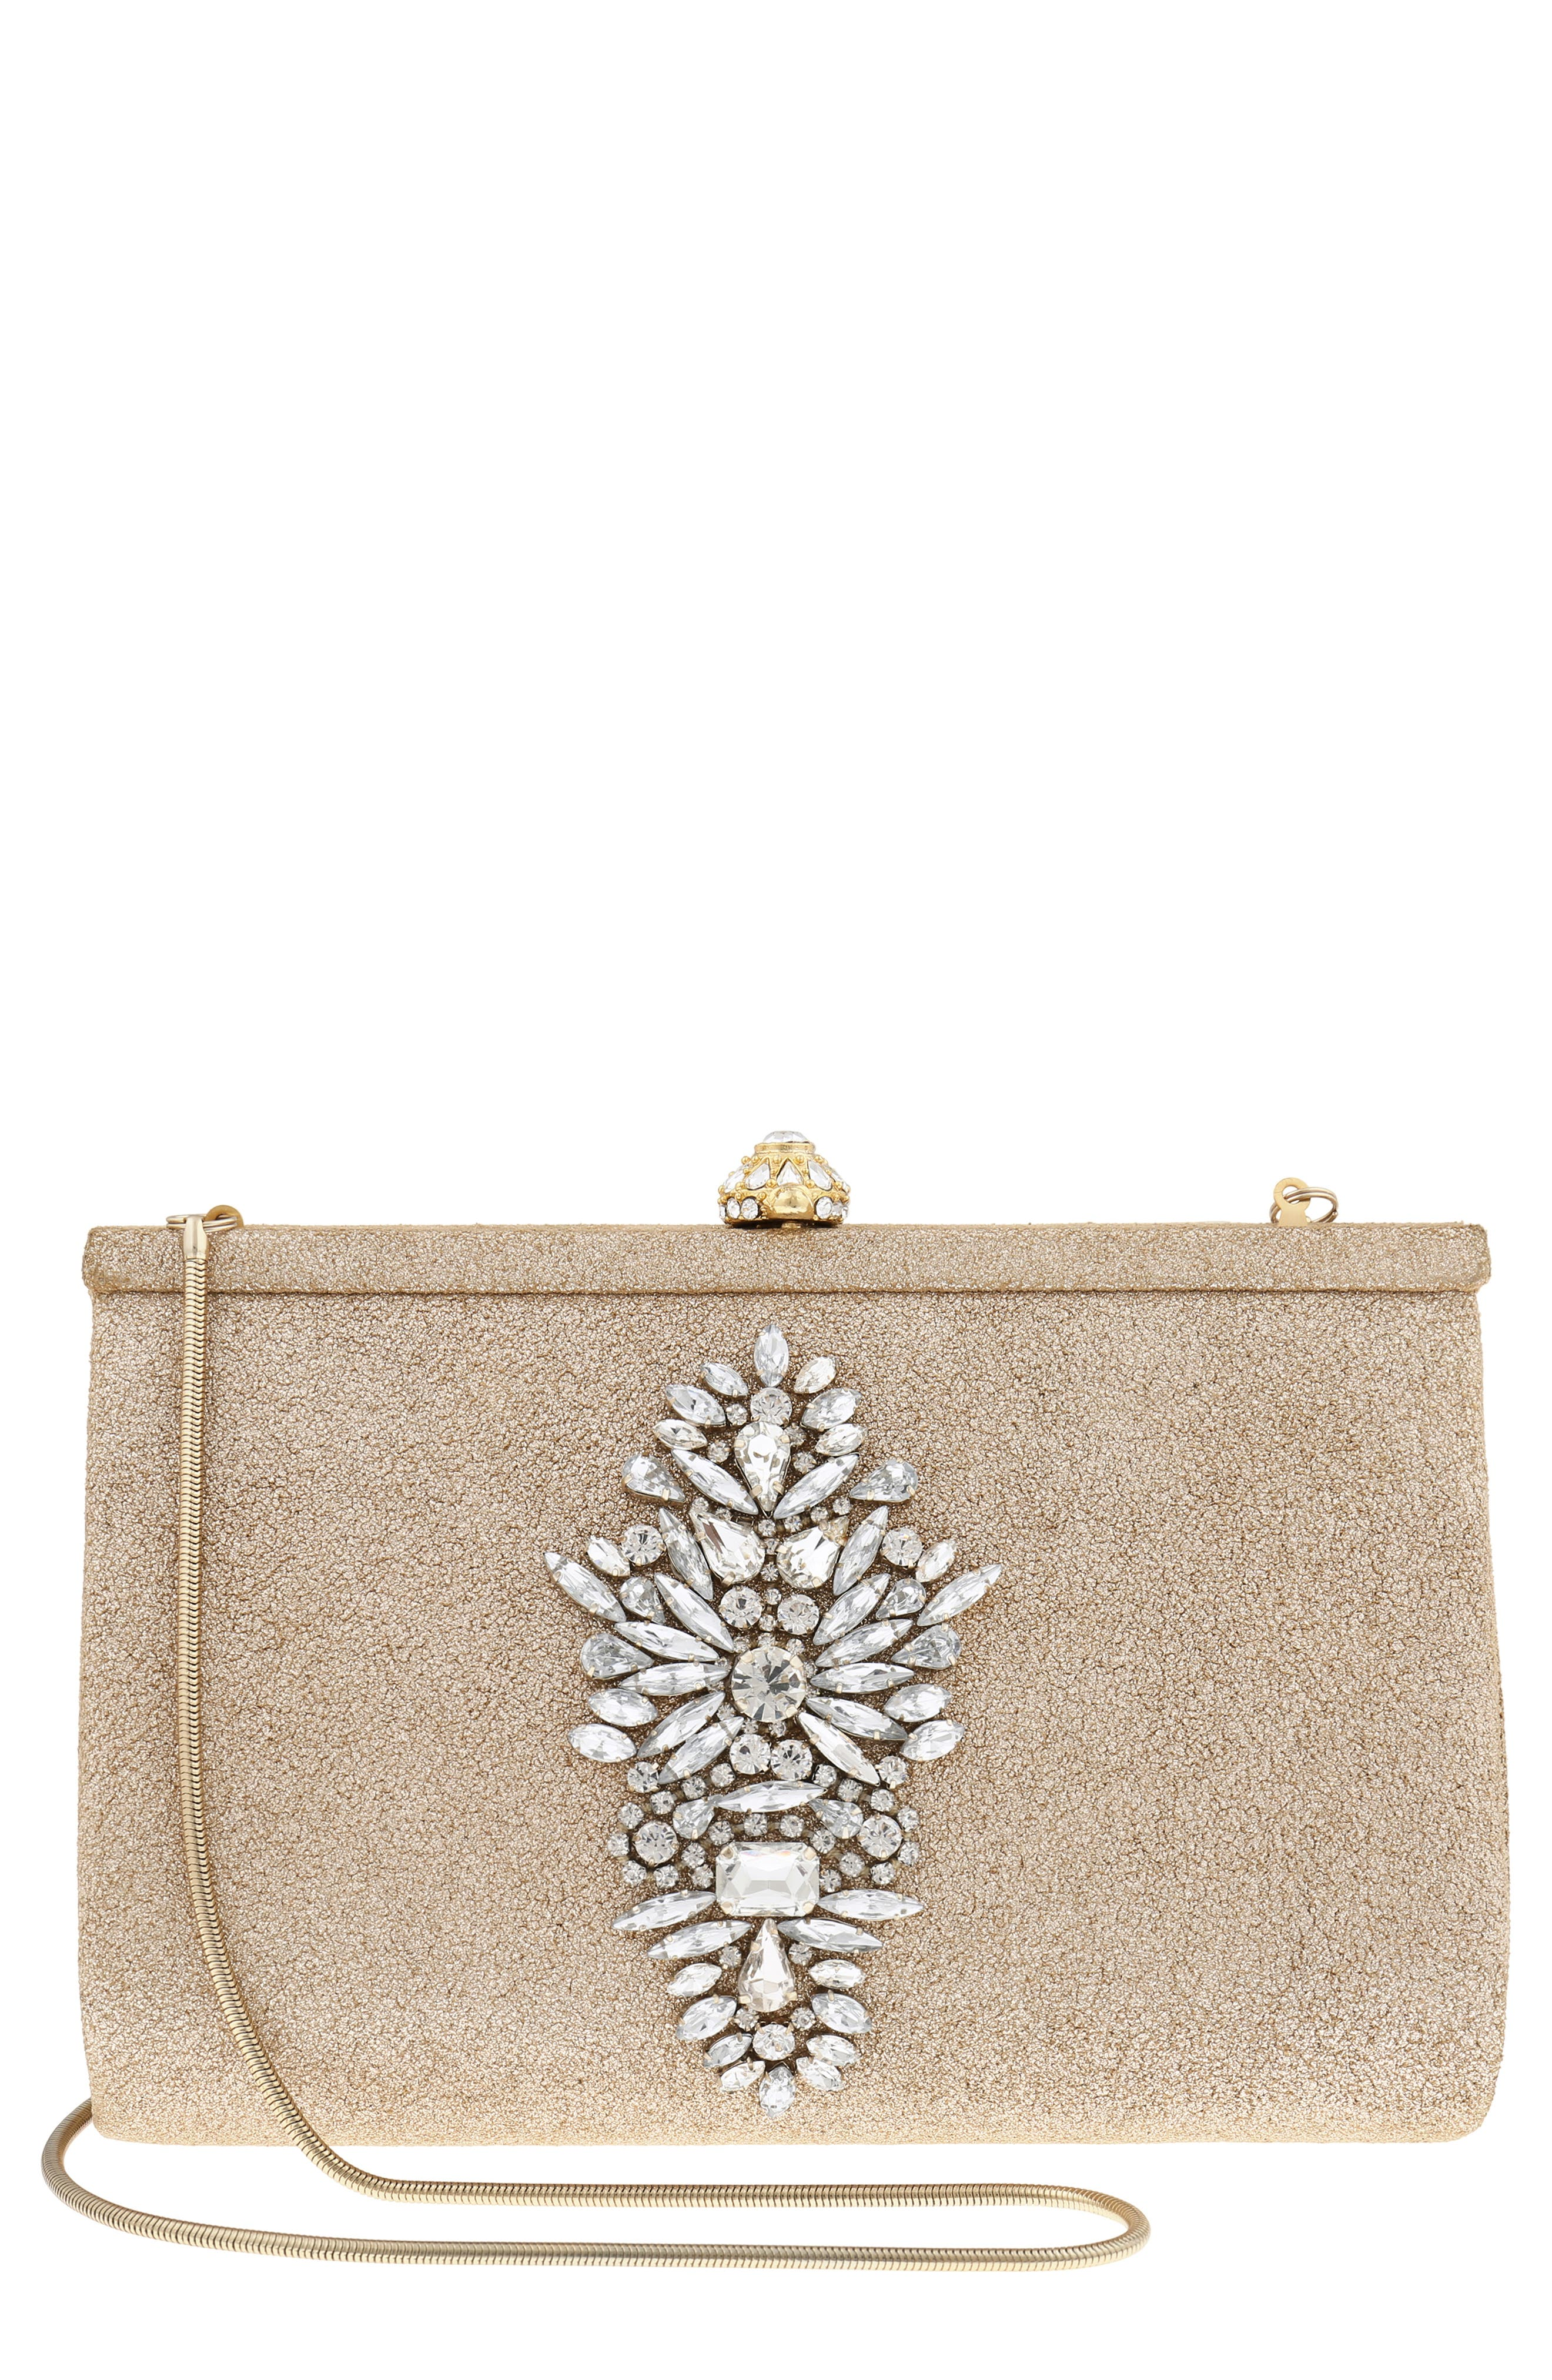 Galaxy Embellished Clutch,                         Main,                         color, Platino